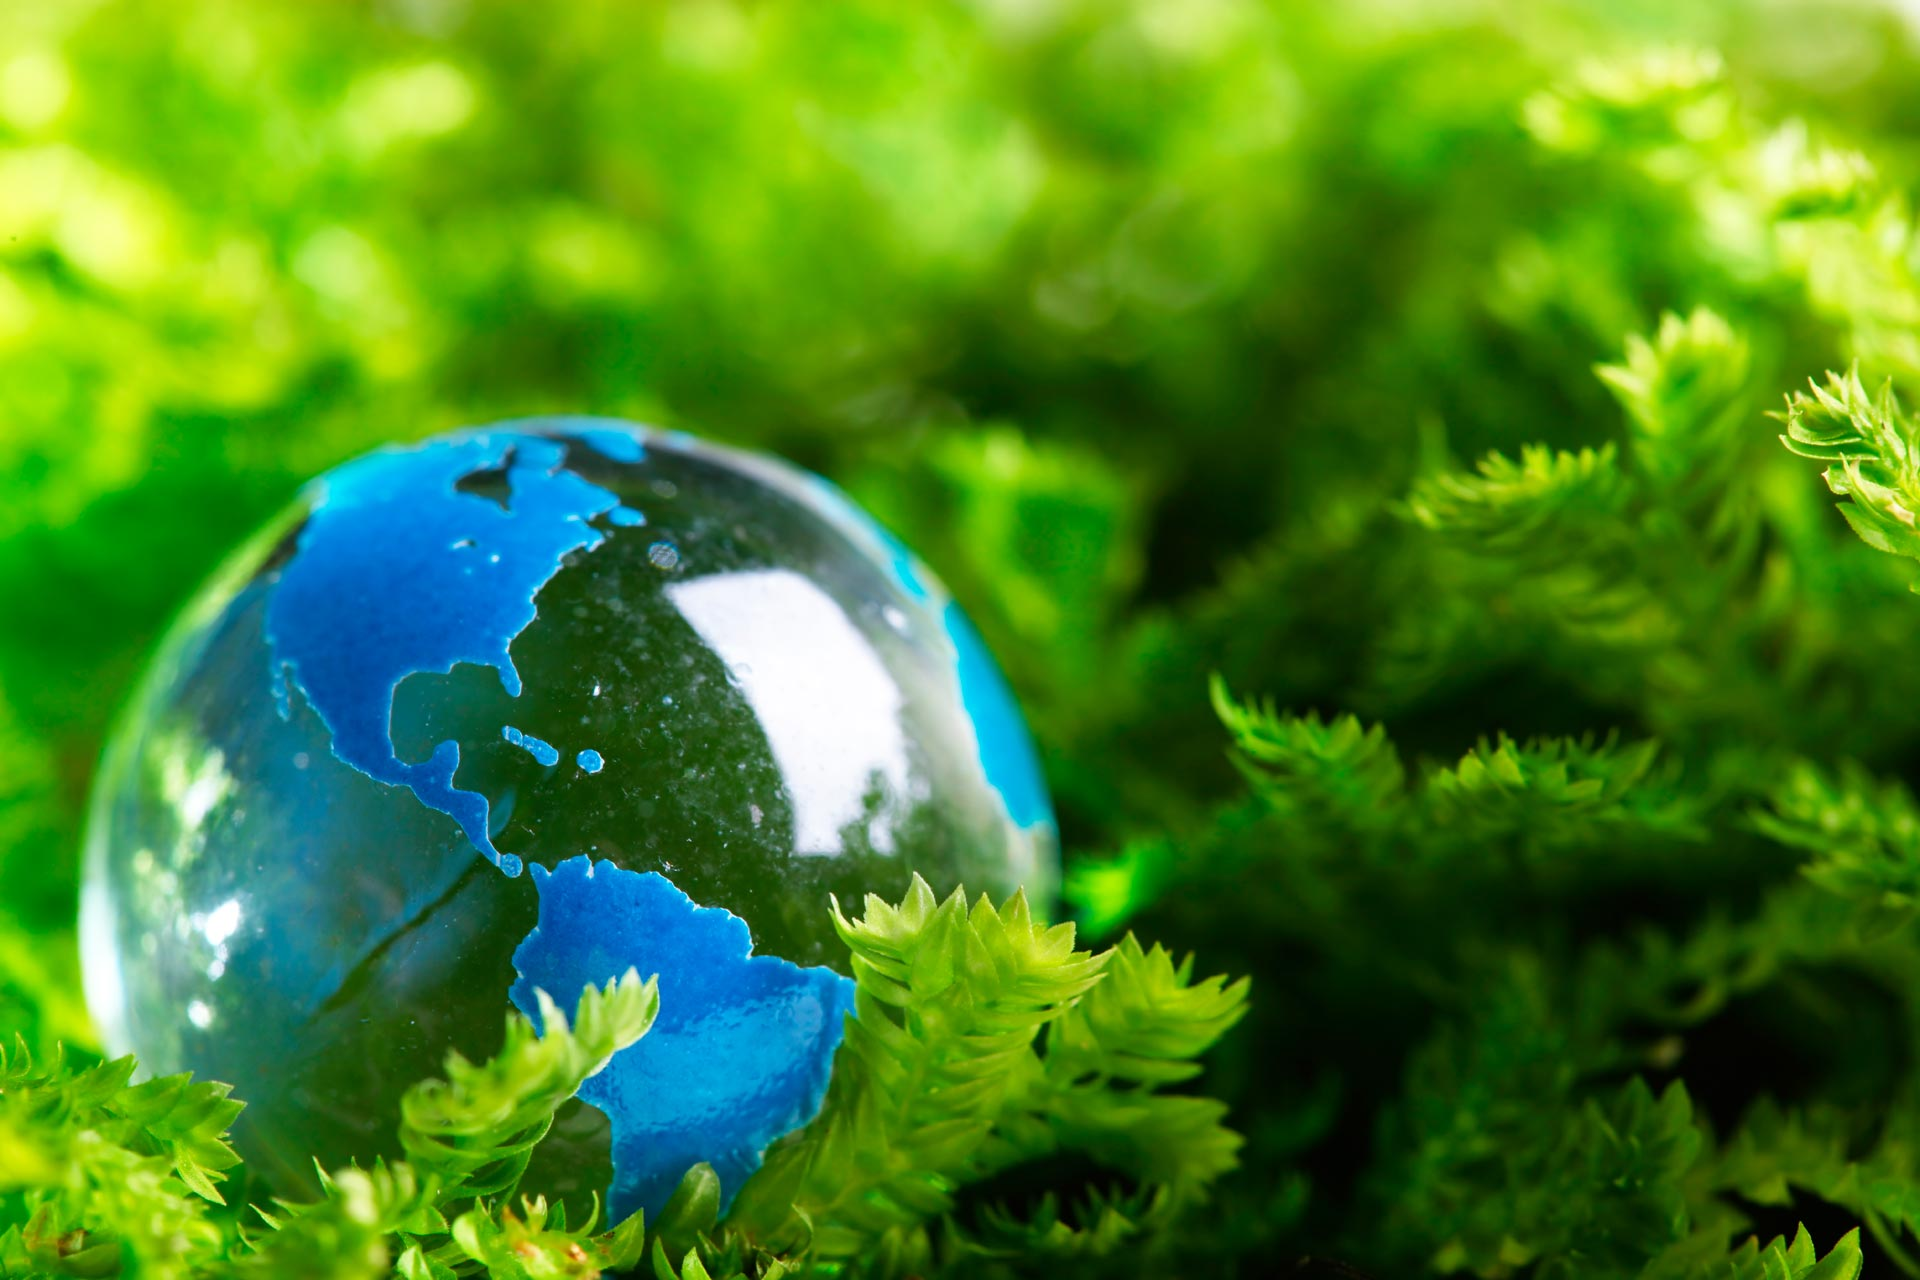 environmental problems derived from modern societies environmental sciences essay The role of science and technology in society and  the most pressing social and economic aspects of modern science  issues - science and society .